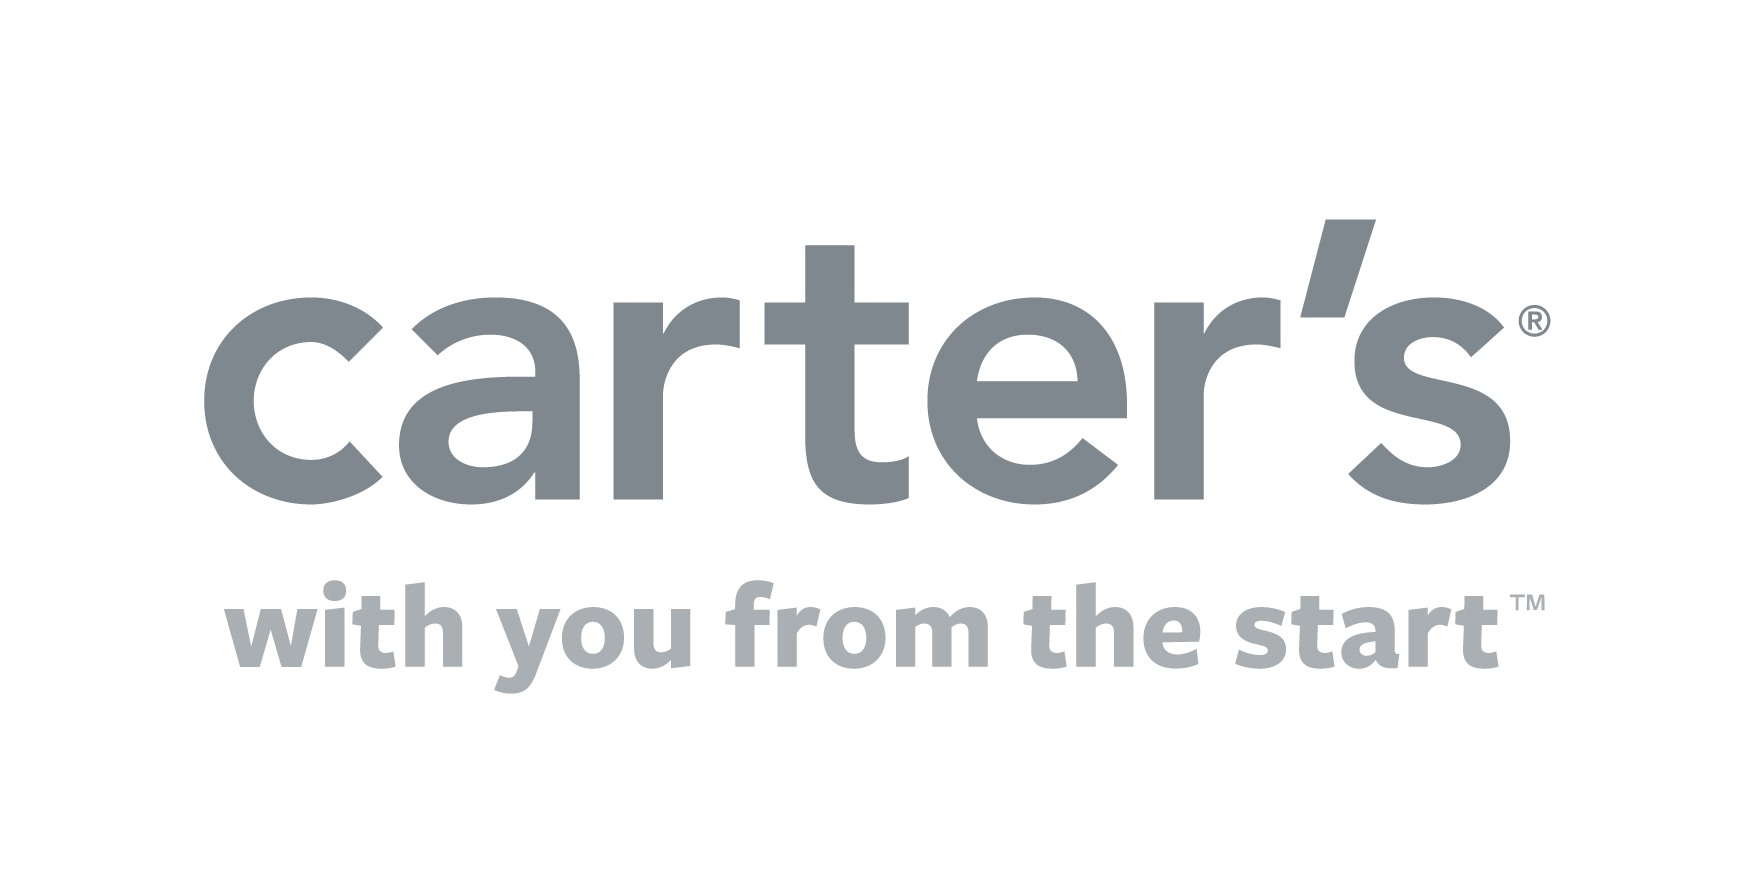 Carter's, Inc. logo